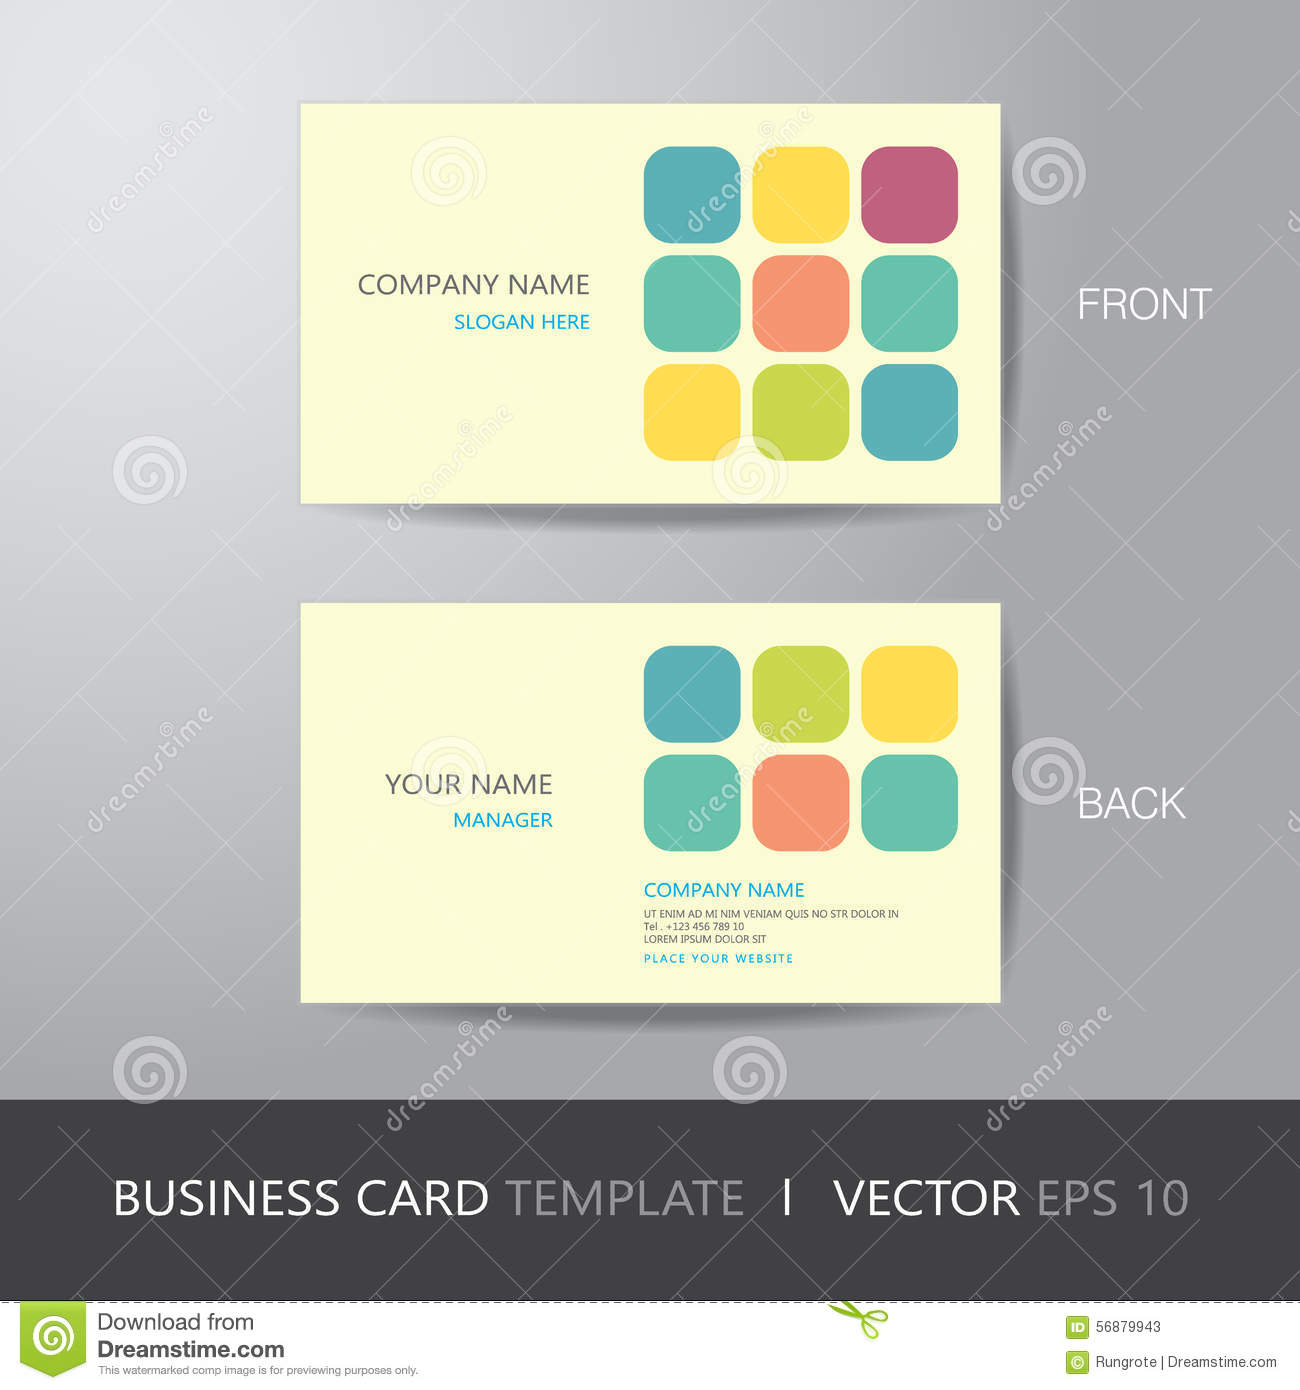 Business card square abstract background design layout template royalty free vector download business card square magicingreecefo Image collections